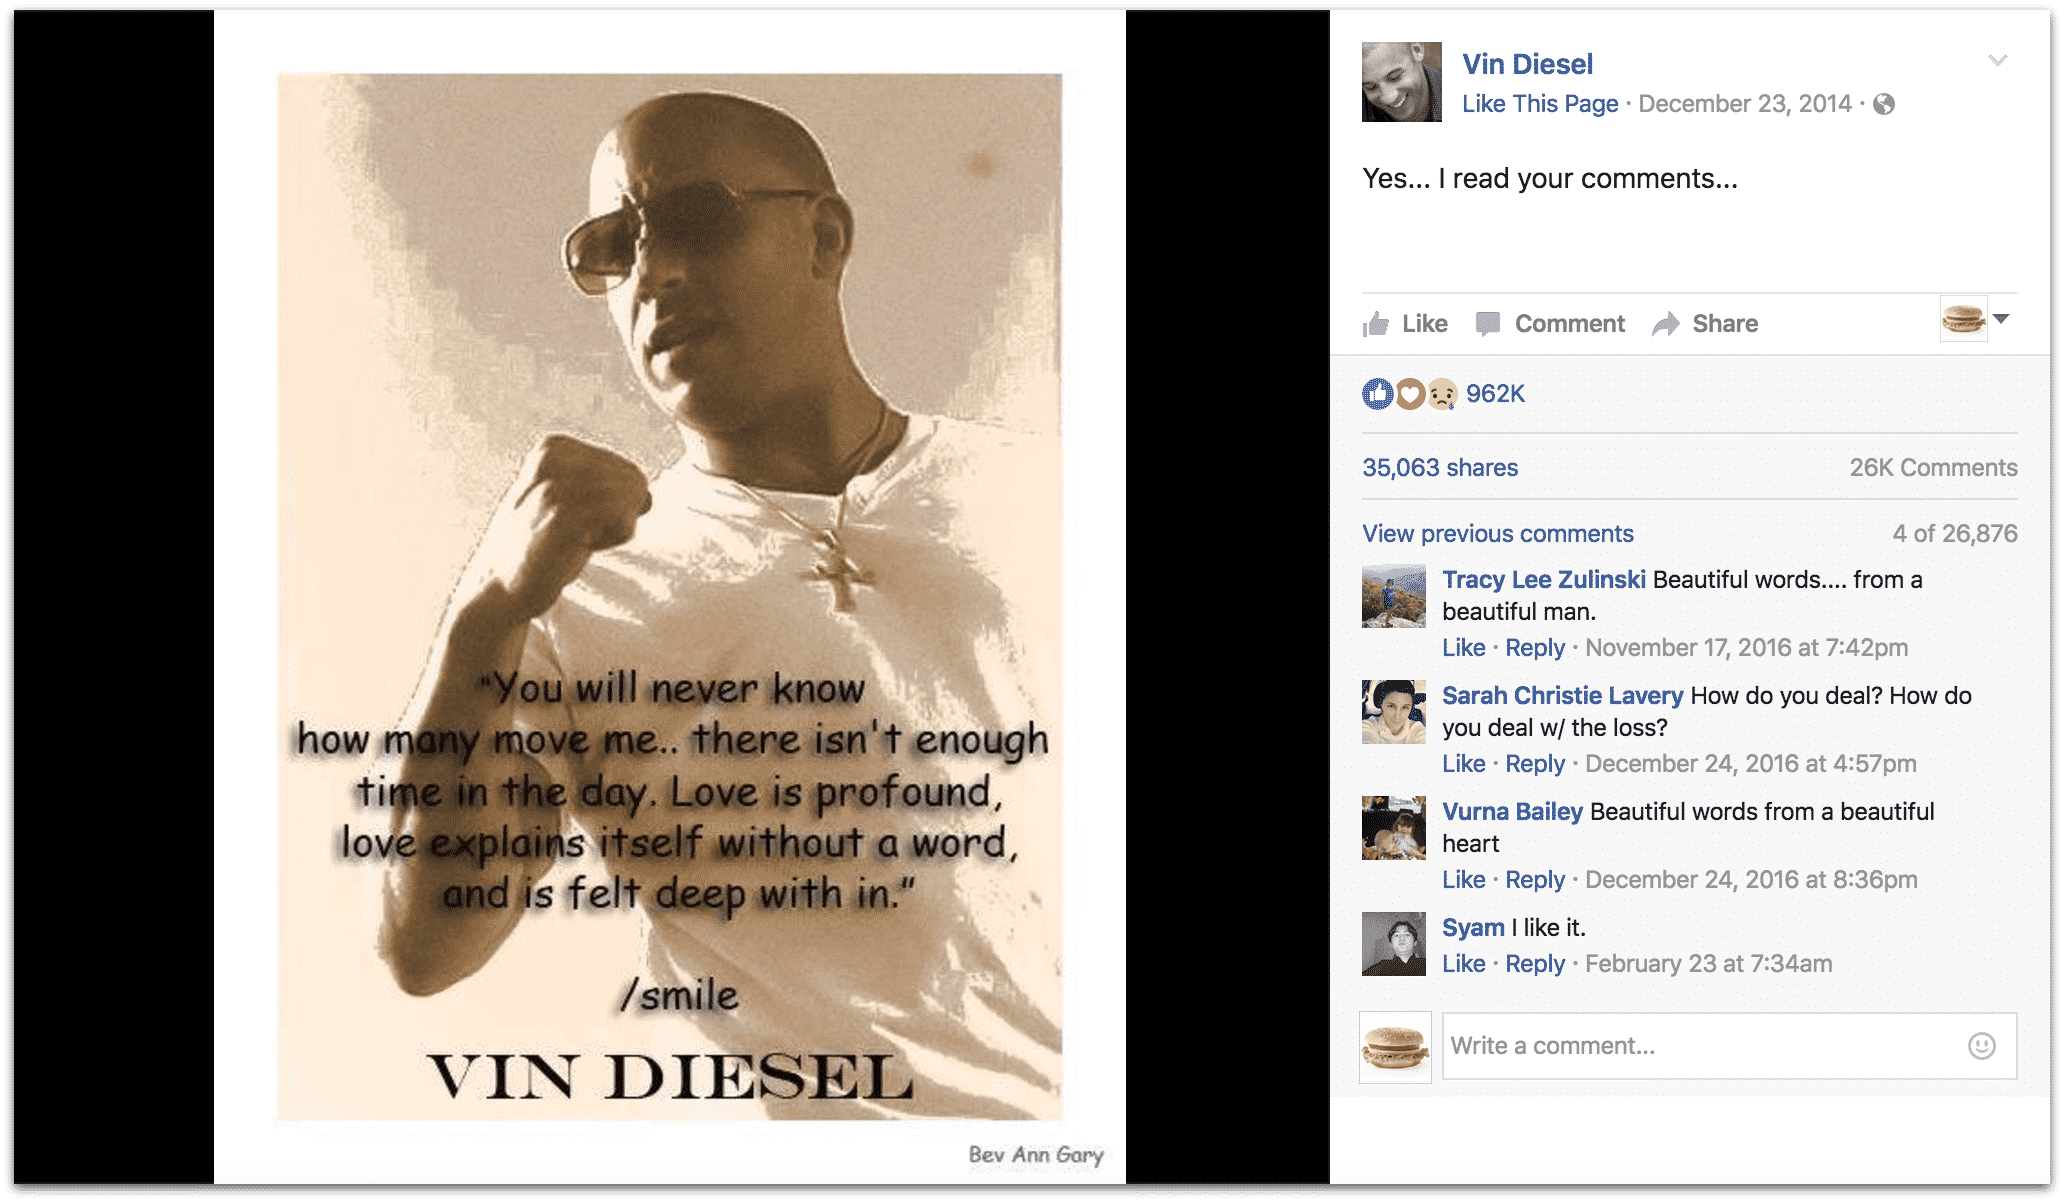 Vin Diesel Inspirational Quotes: 5 Lessons You Can Learn From Vin Diesel's Facebook Page